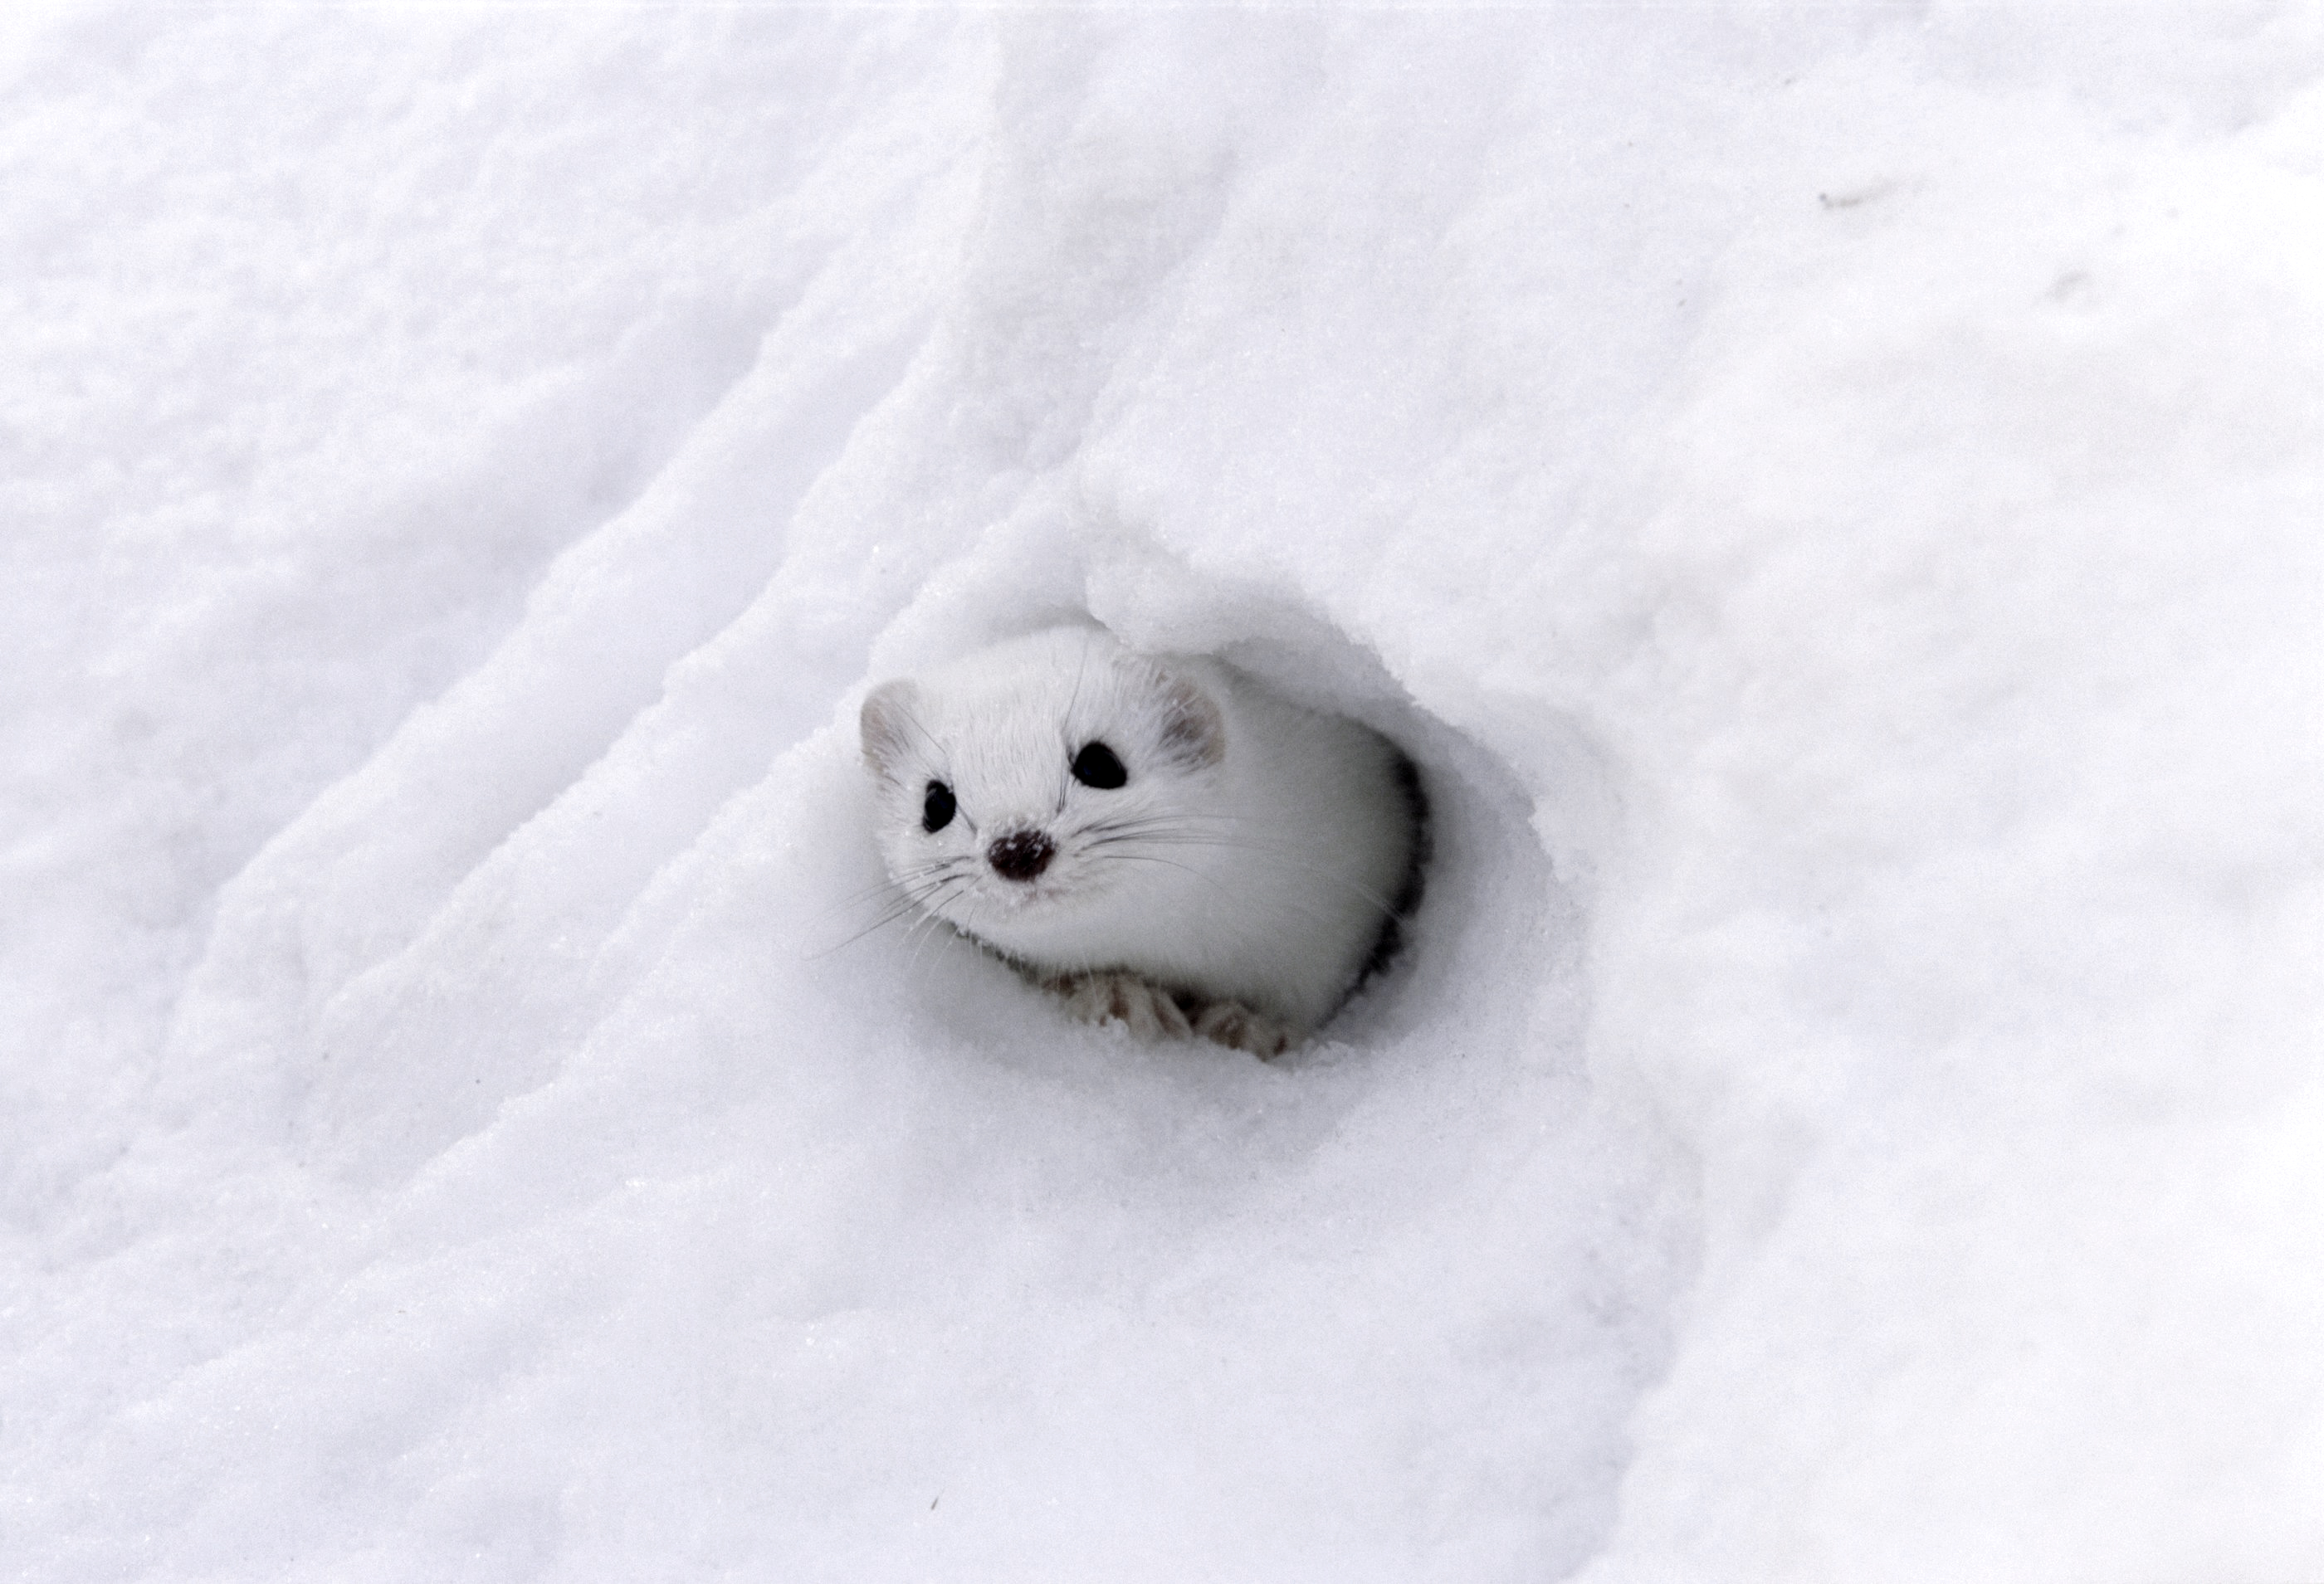 This is not a Yeti!